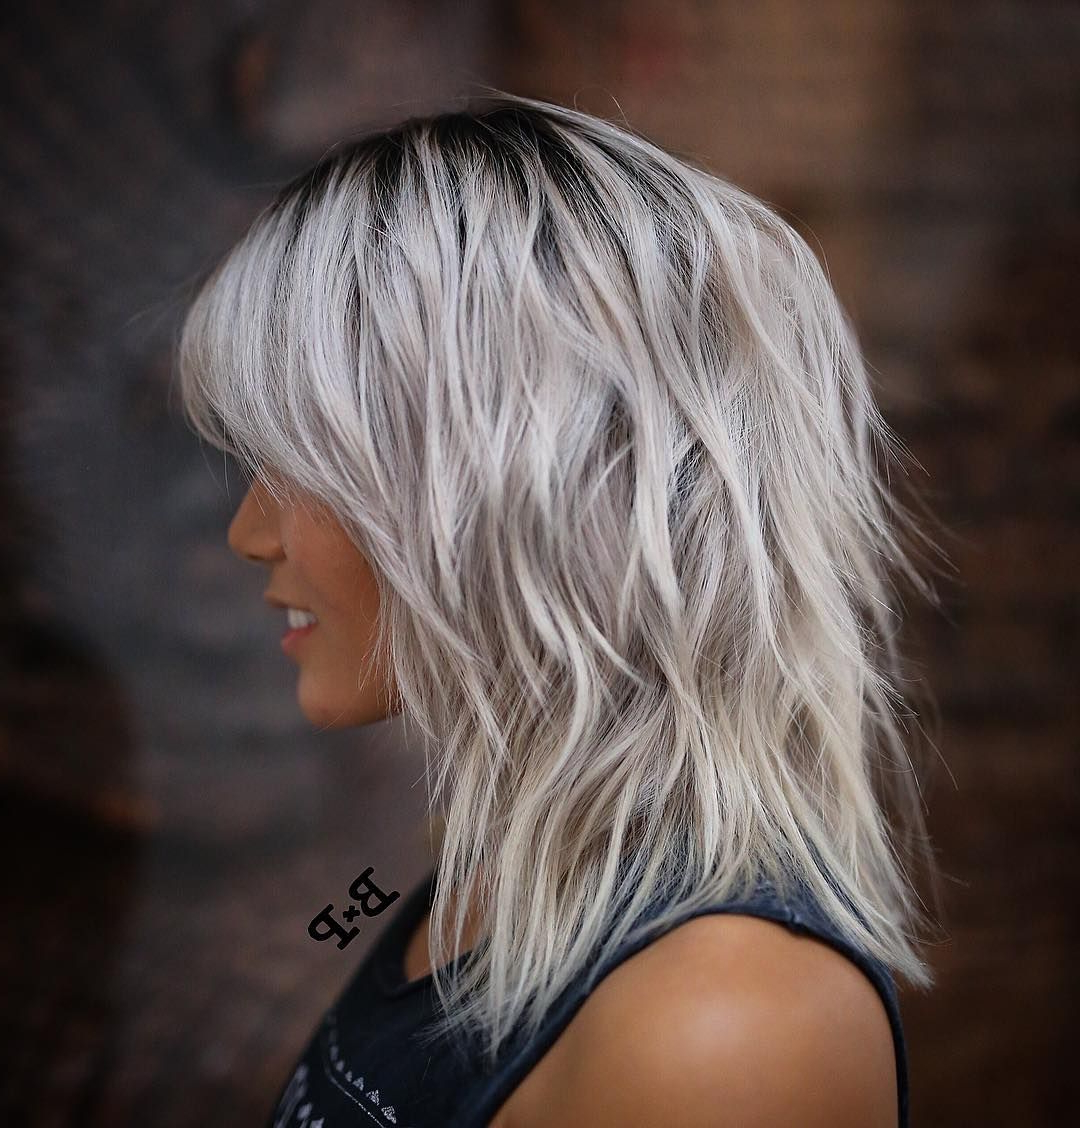 Well Known Mid Length Light Blonde Shag Haircuts With Bangs In Pin On Modern Shag Haircut (Gallery 2 of 20)